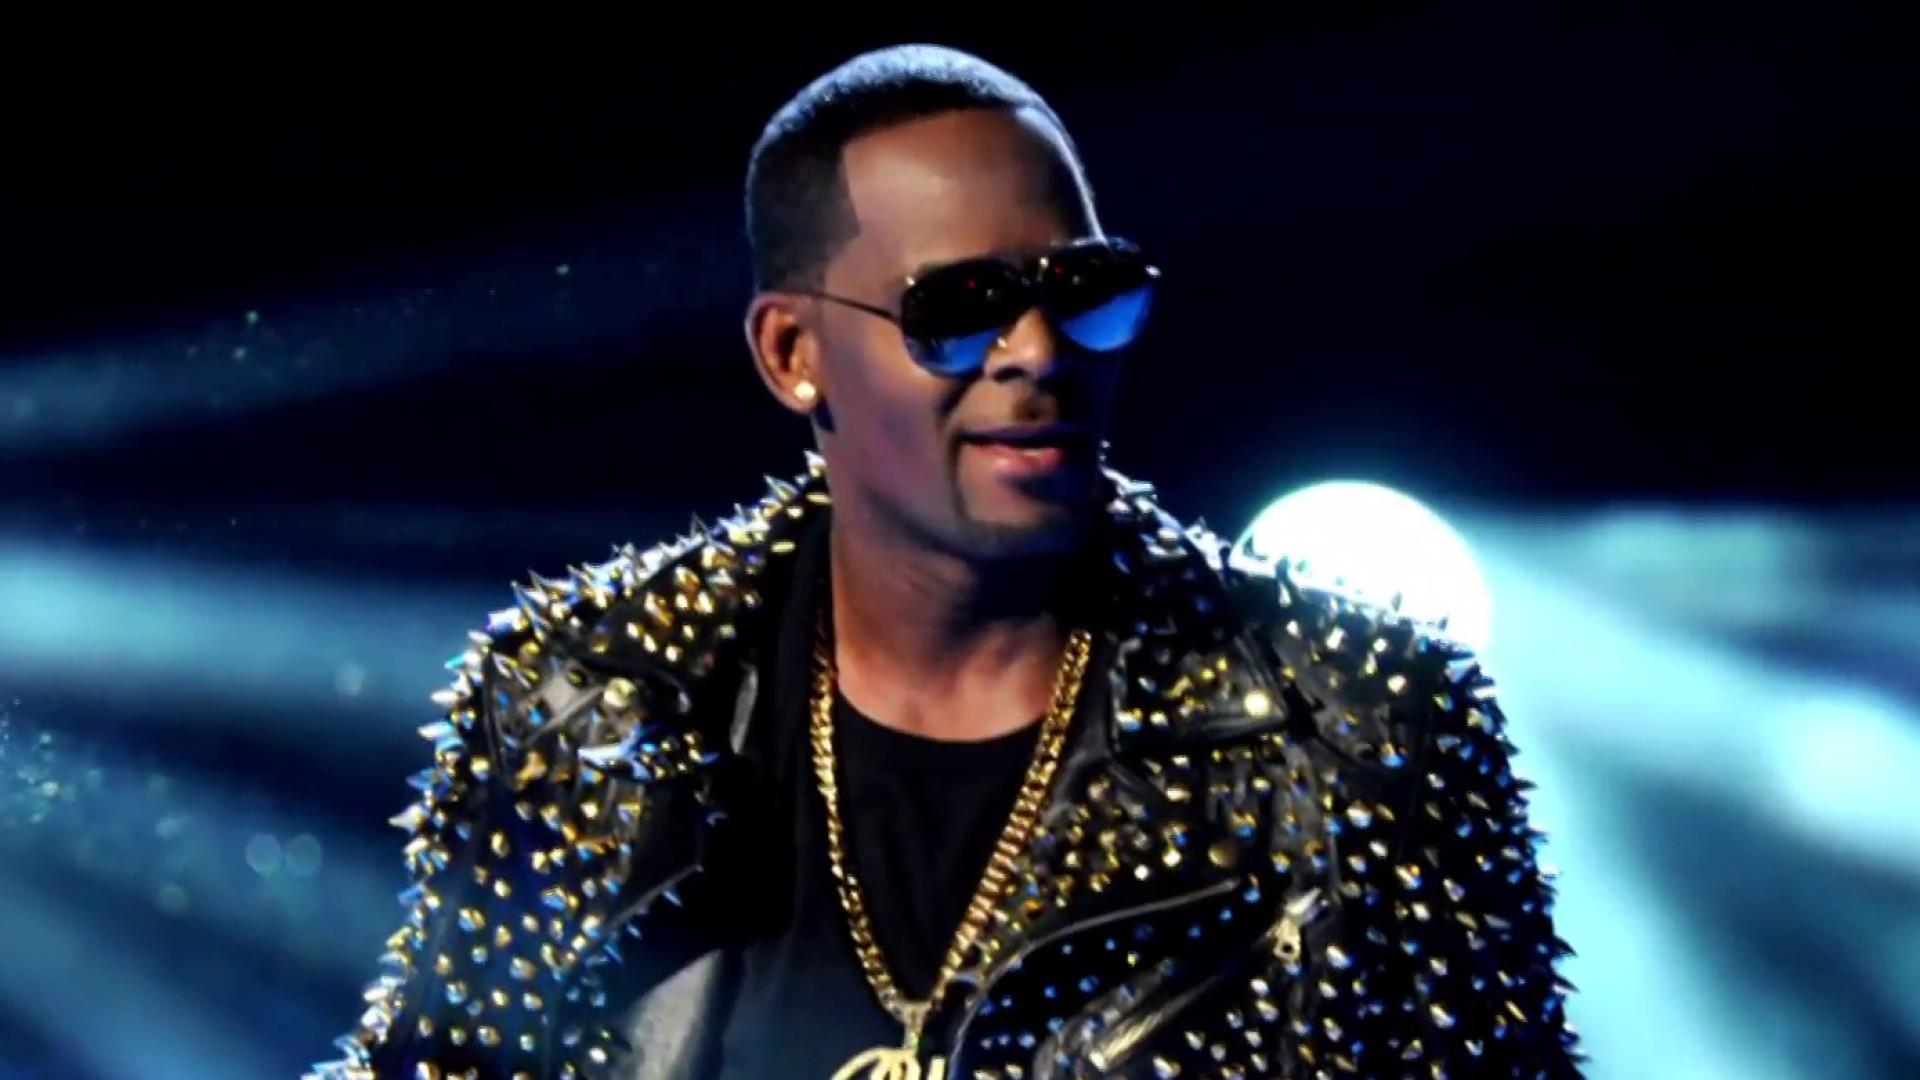 R. Kelly bond set at $1 million as singer appears in court on sexual abuse charges